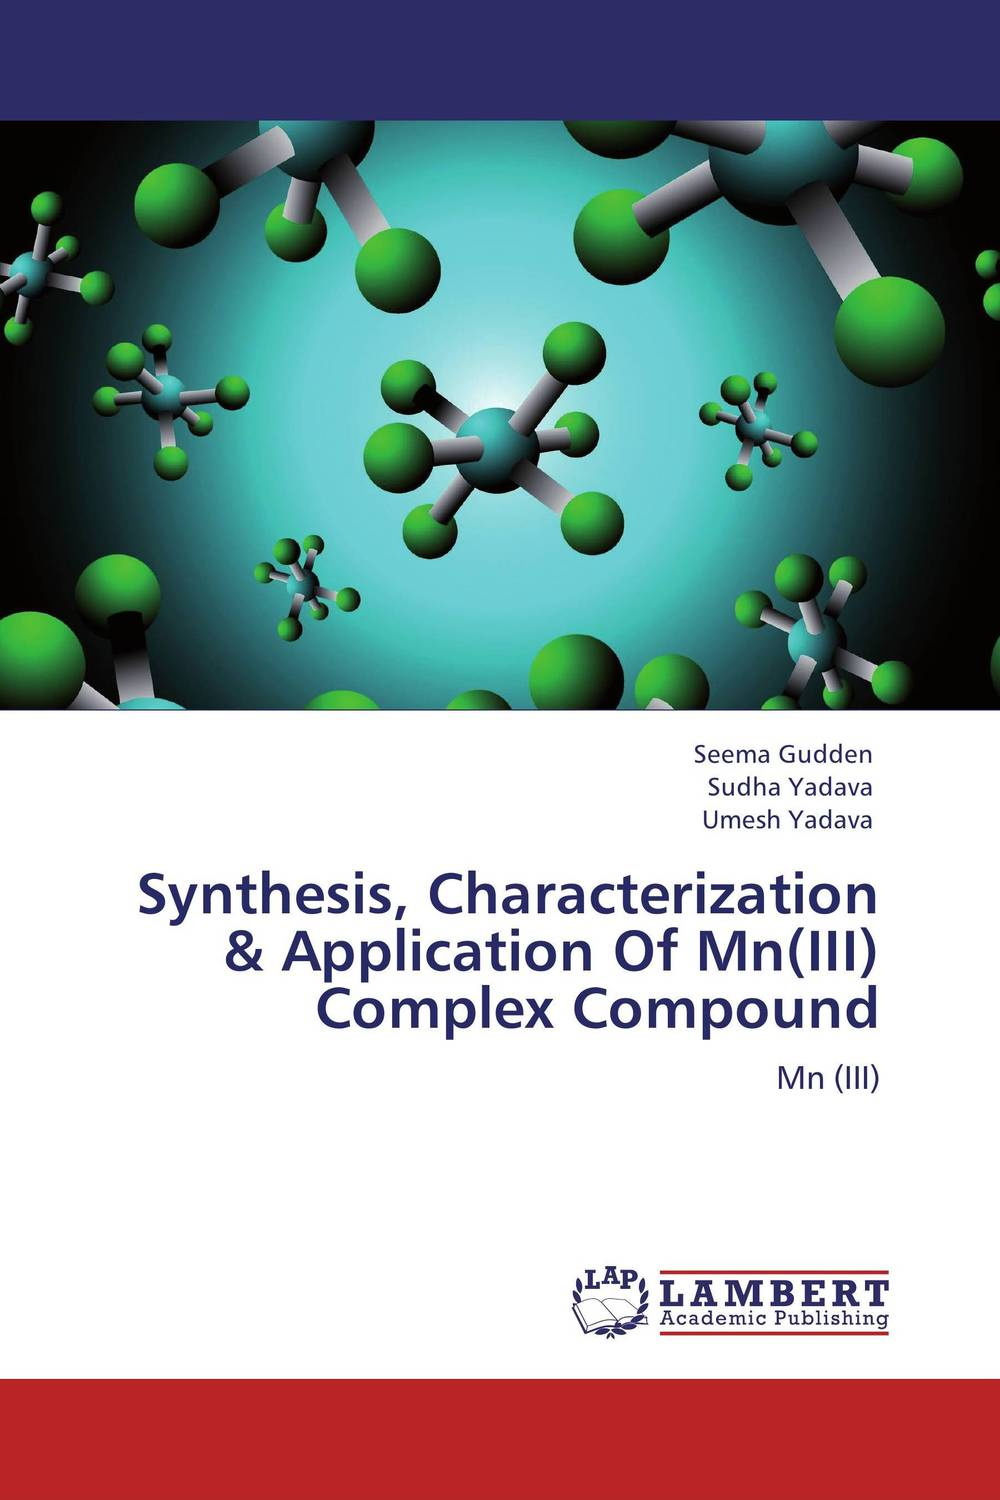 Synthesis, Characterization & Application Of Mn(III) Complex Compound kawther ahmed and karima hagagg microwave synthesis and its textile application